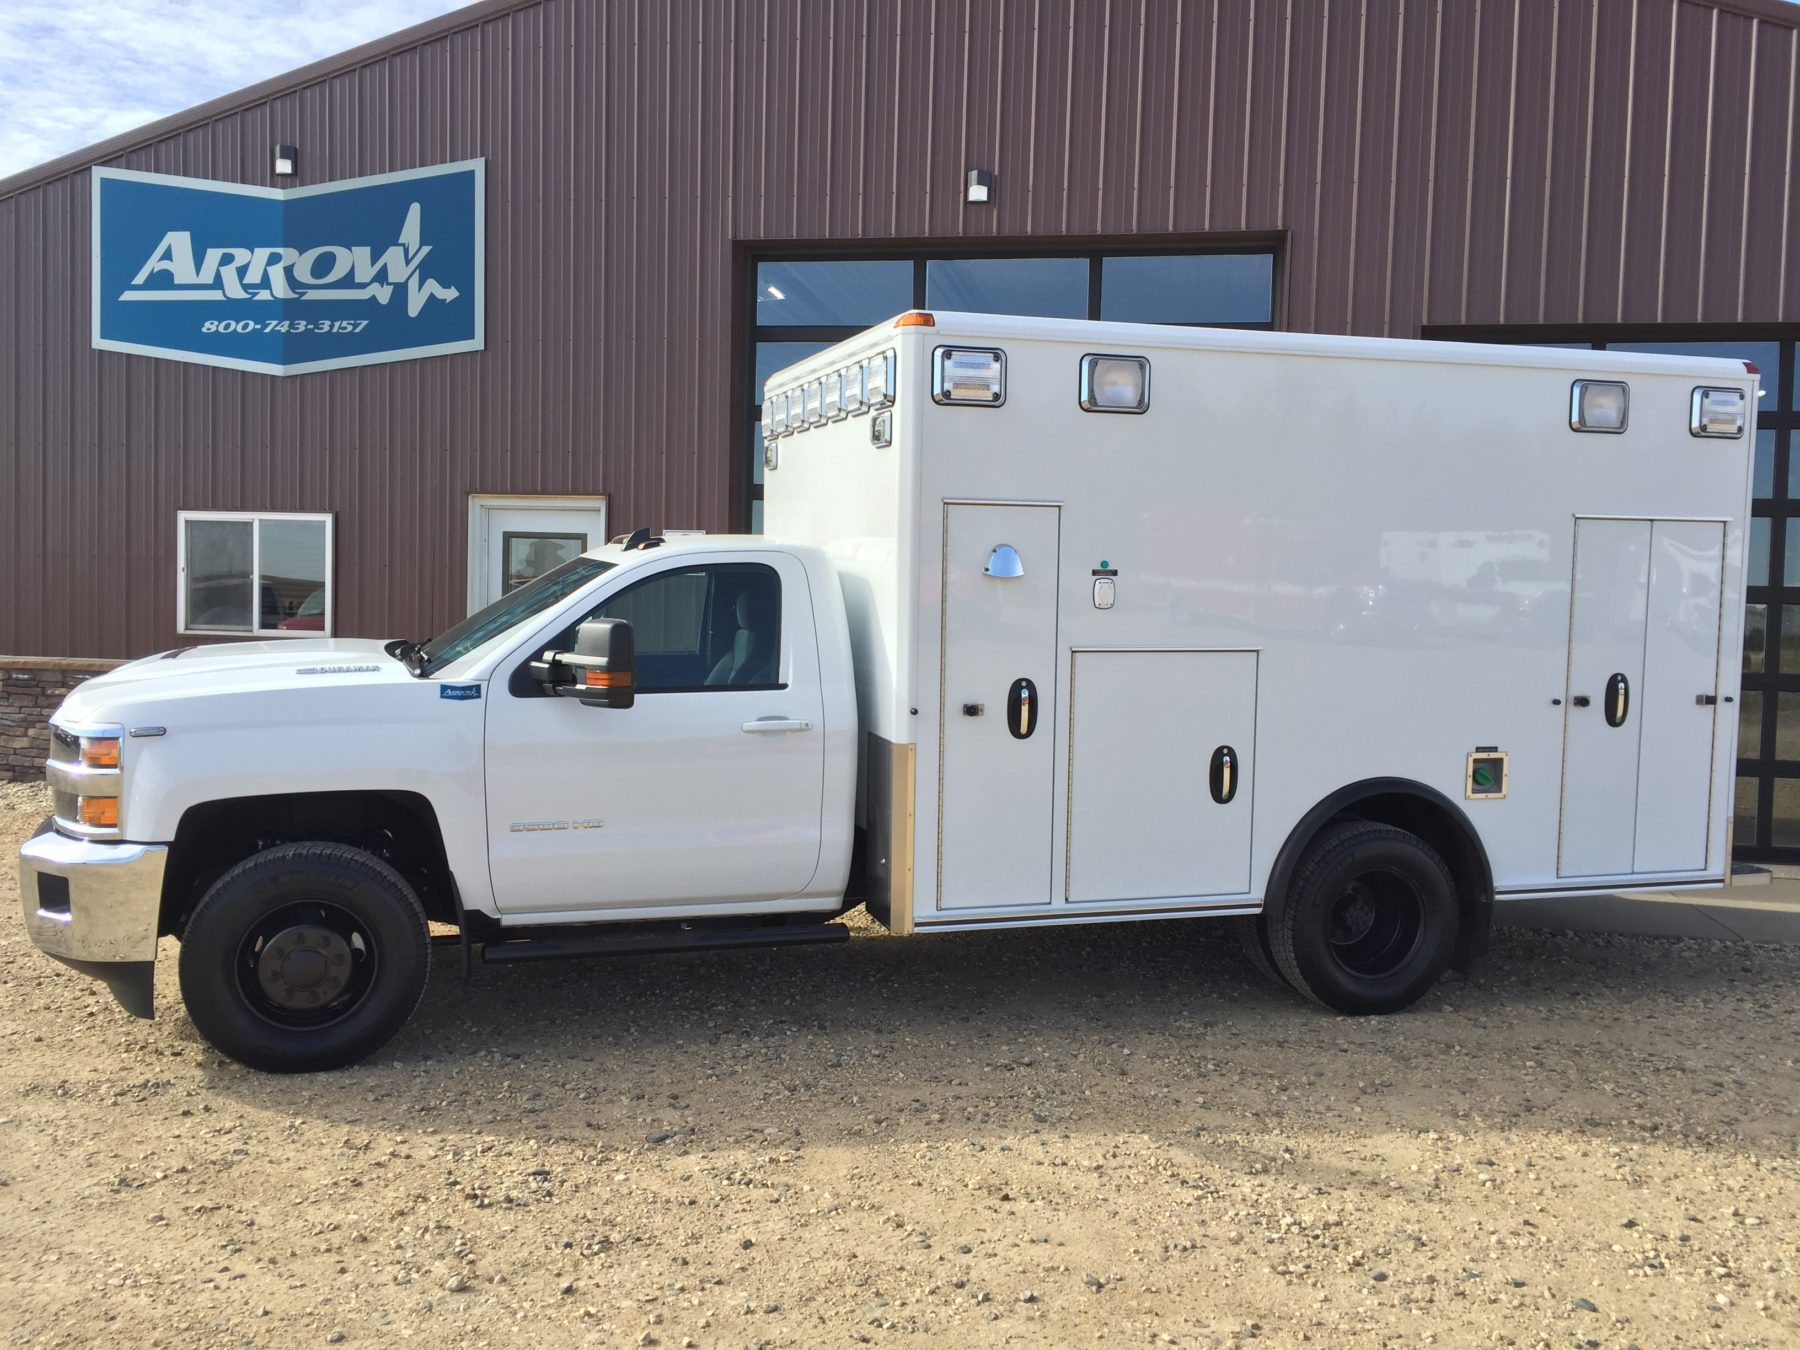 2019 Chevrolet K3500 4x4 Type 1 Ambulance For Sale – Picture 2